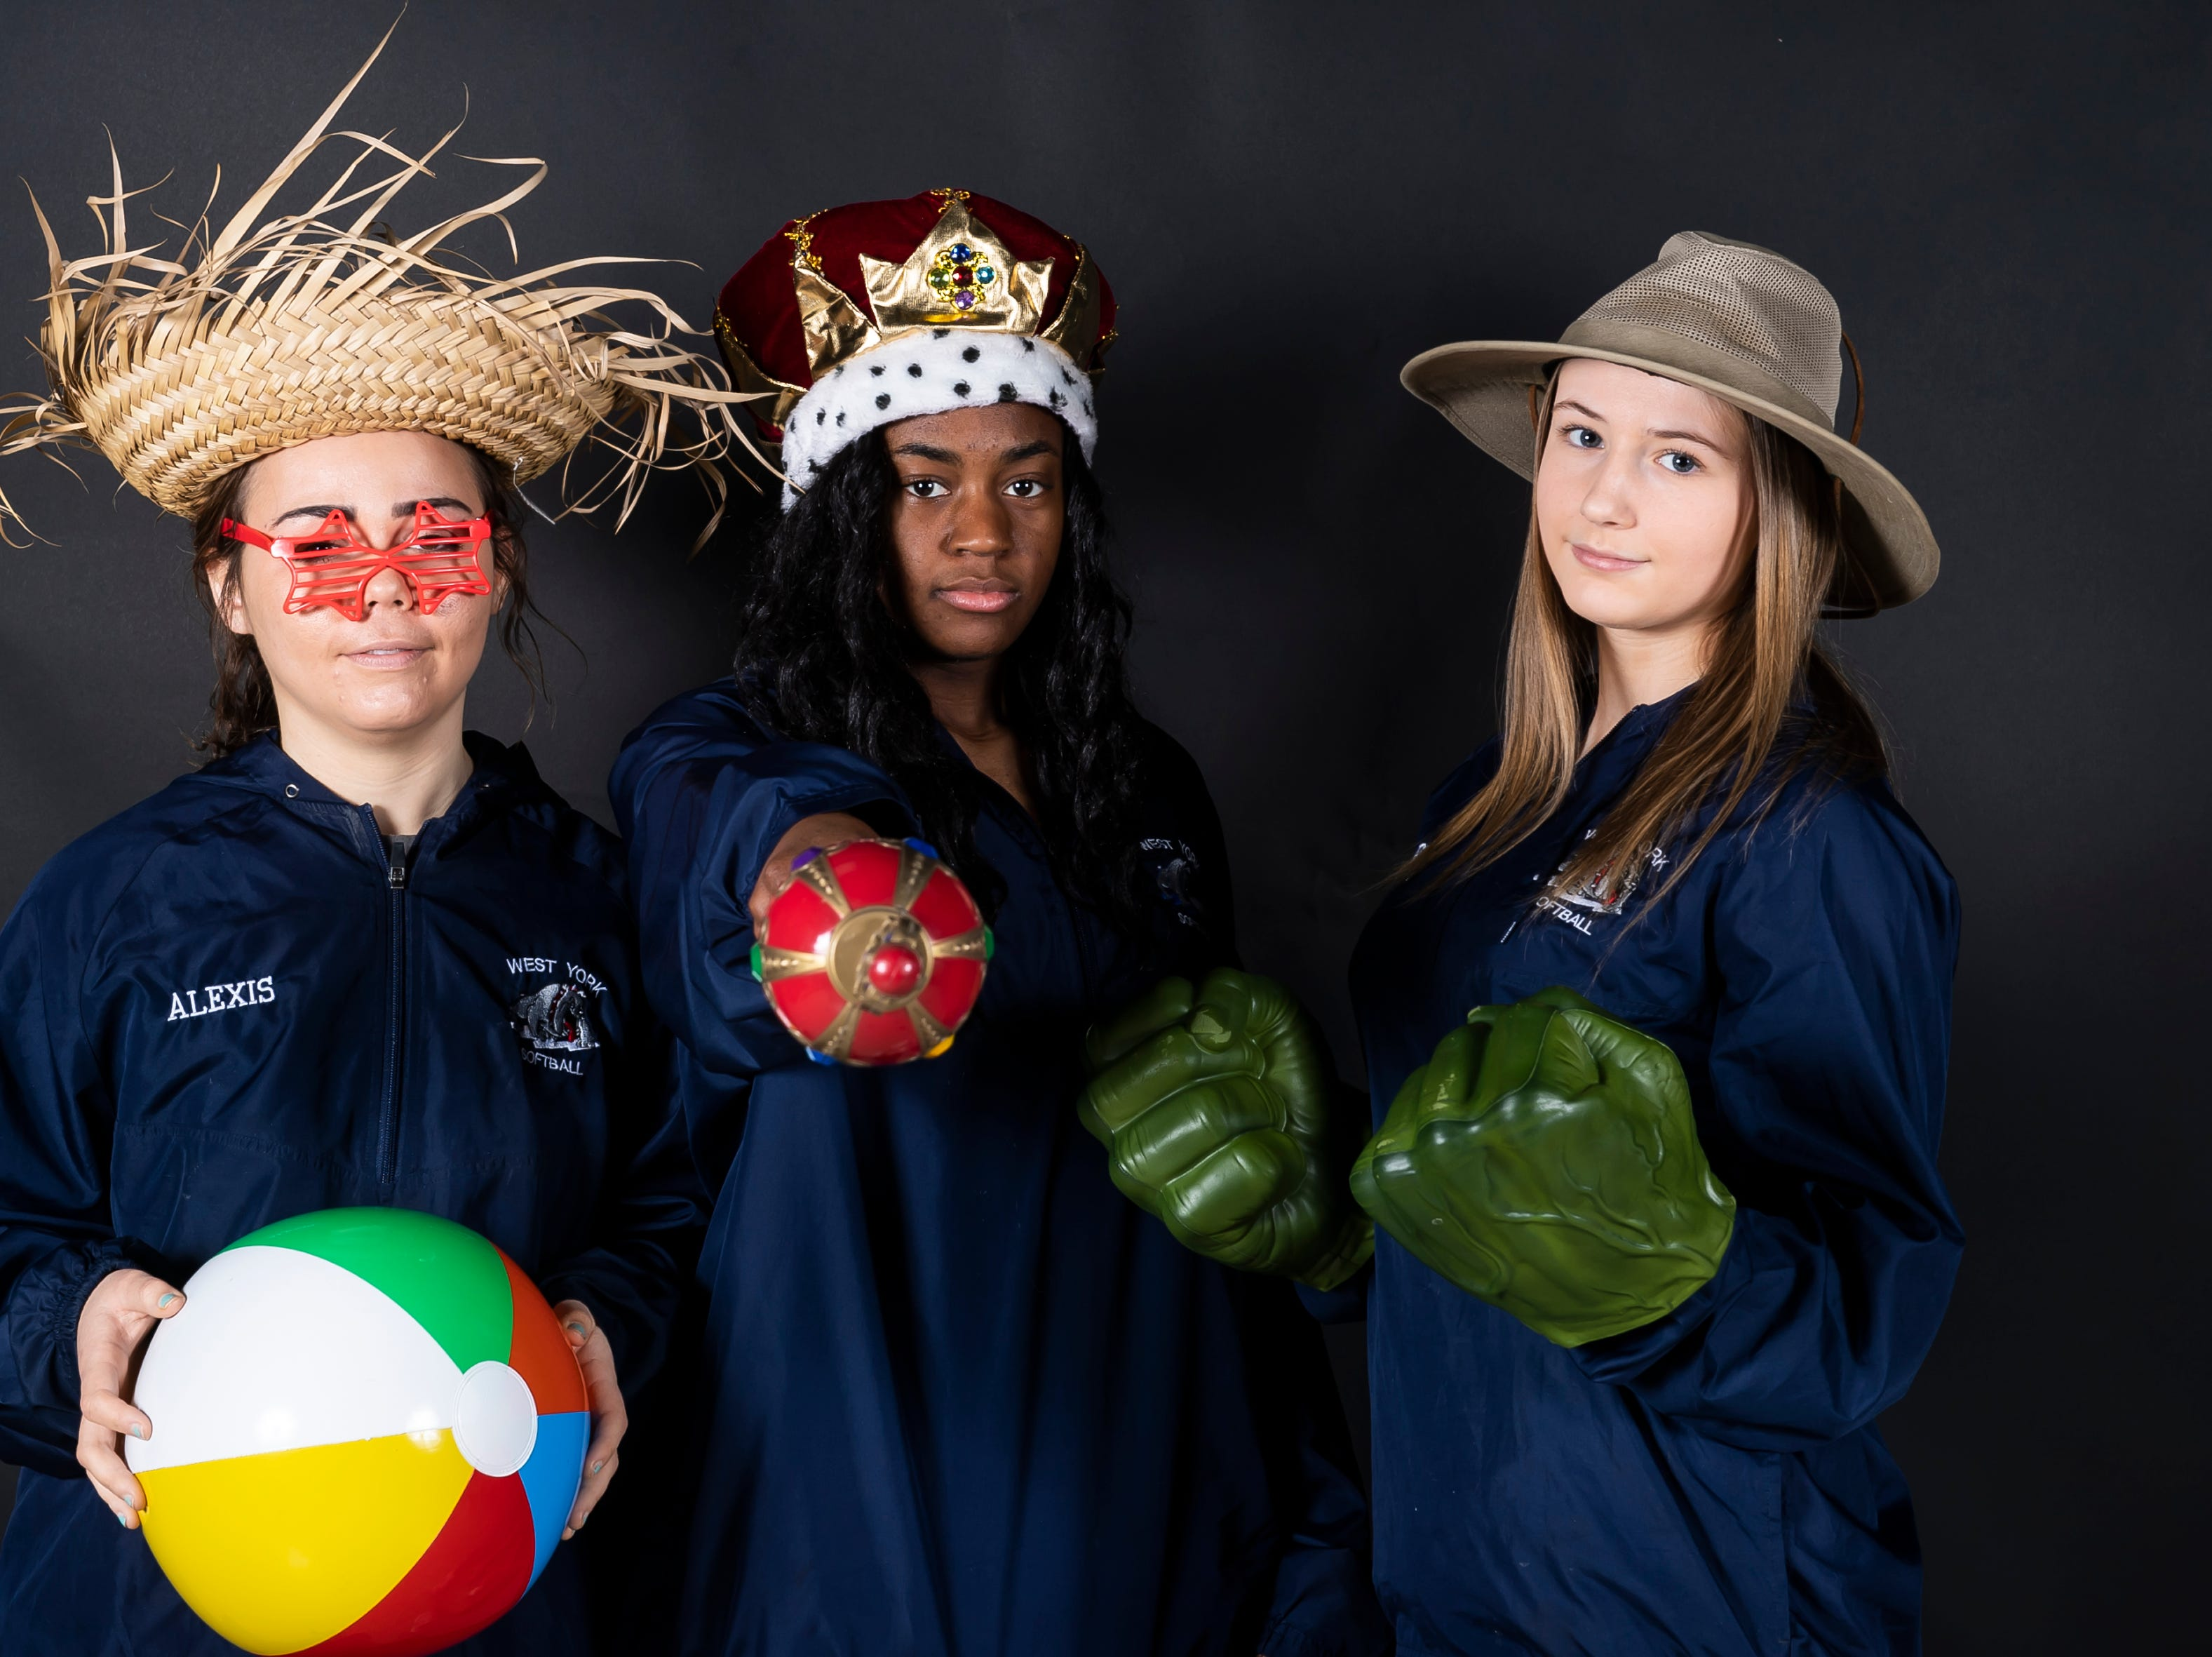 West York softball players pose in the GameTimePA photo booth during spring sports media day in York Sunday, March 10, 2019.